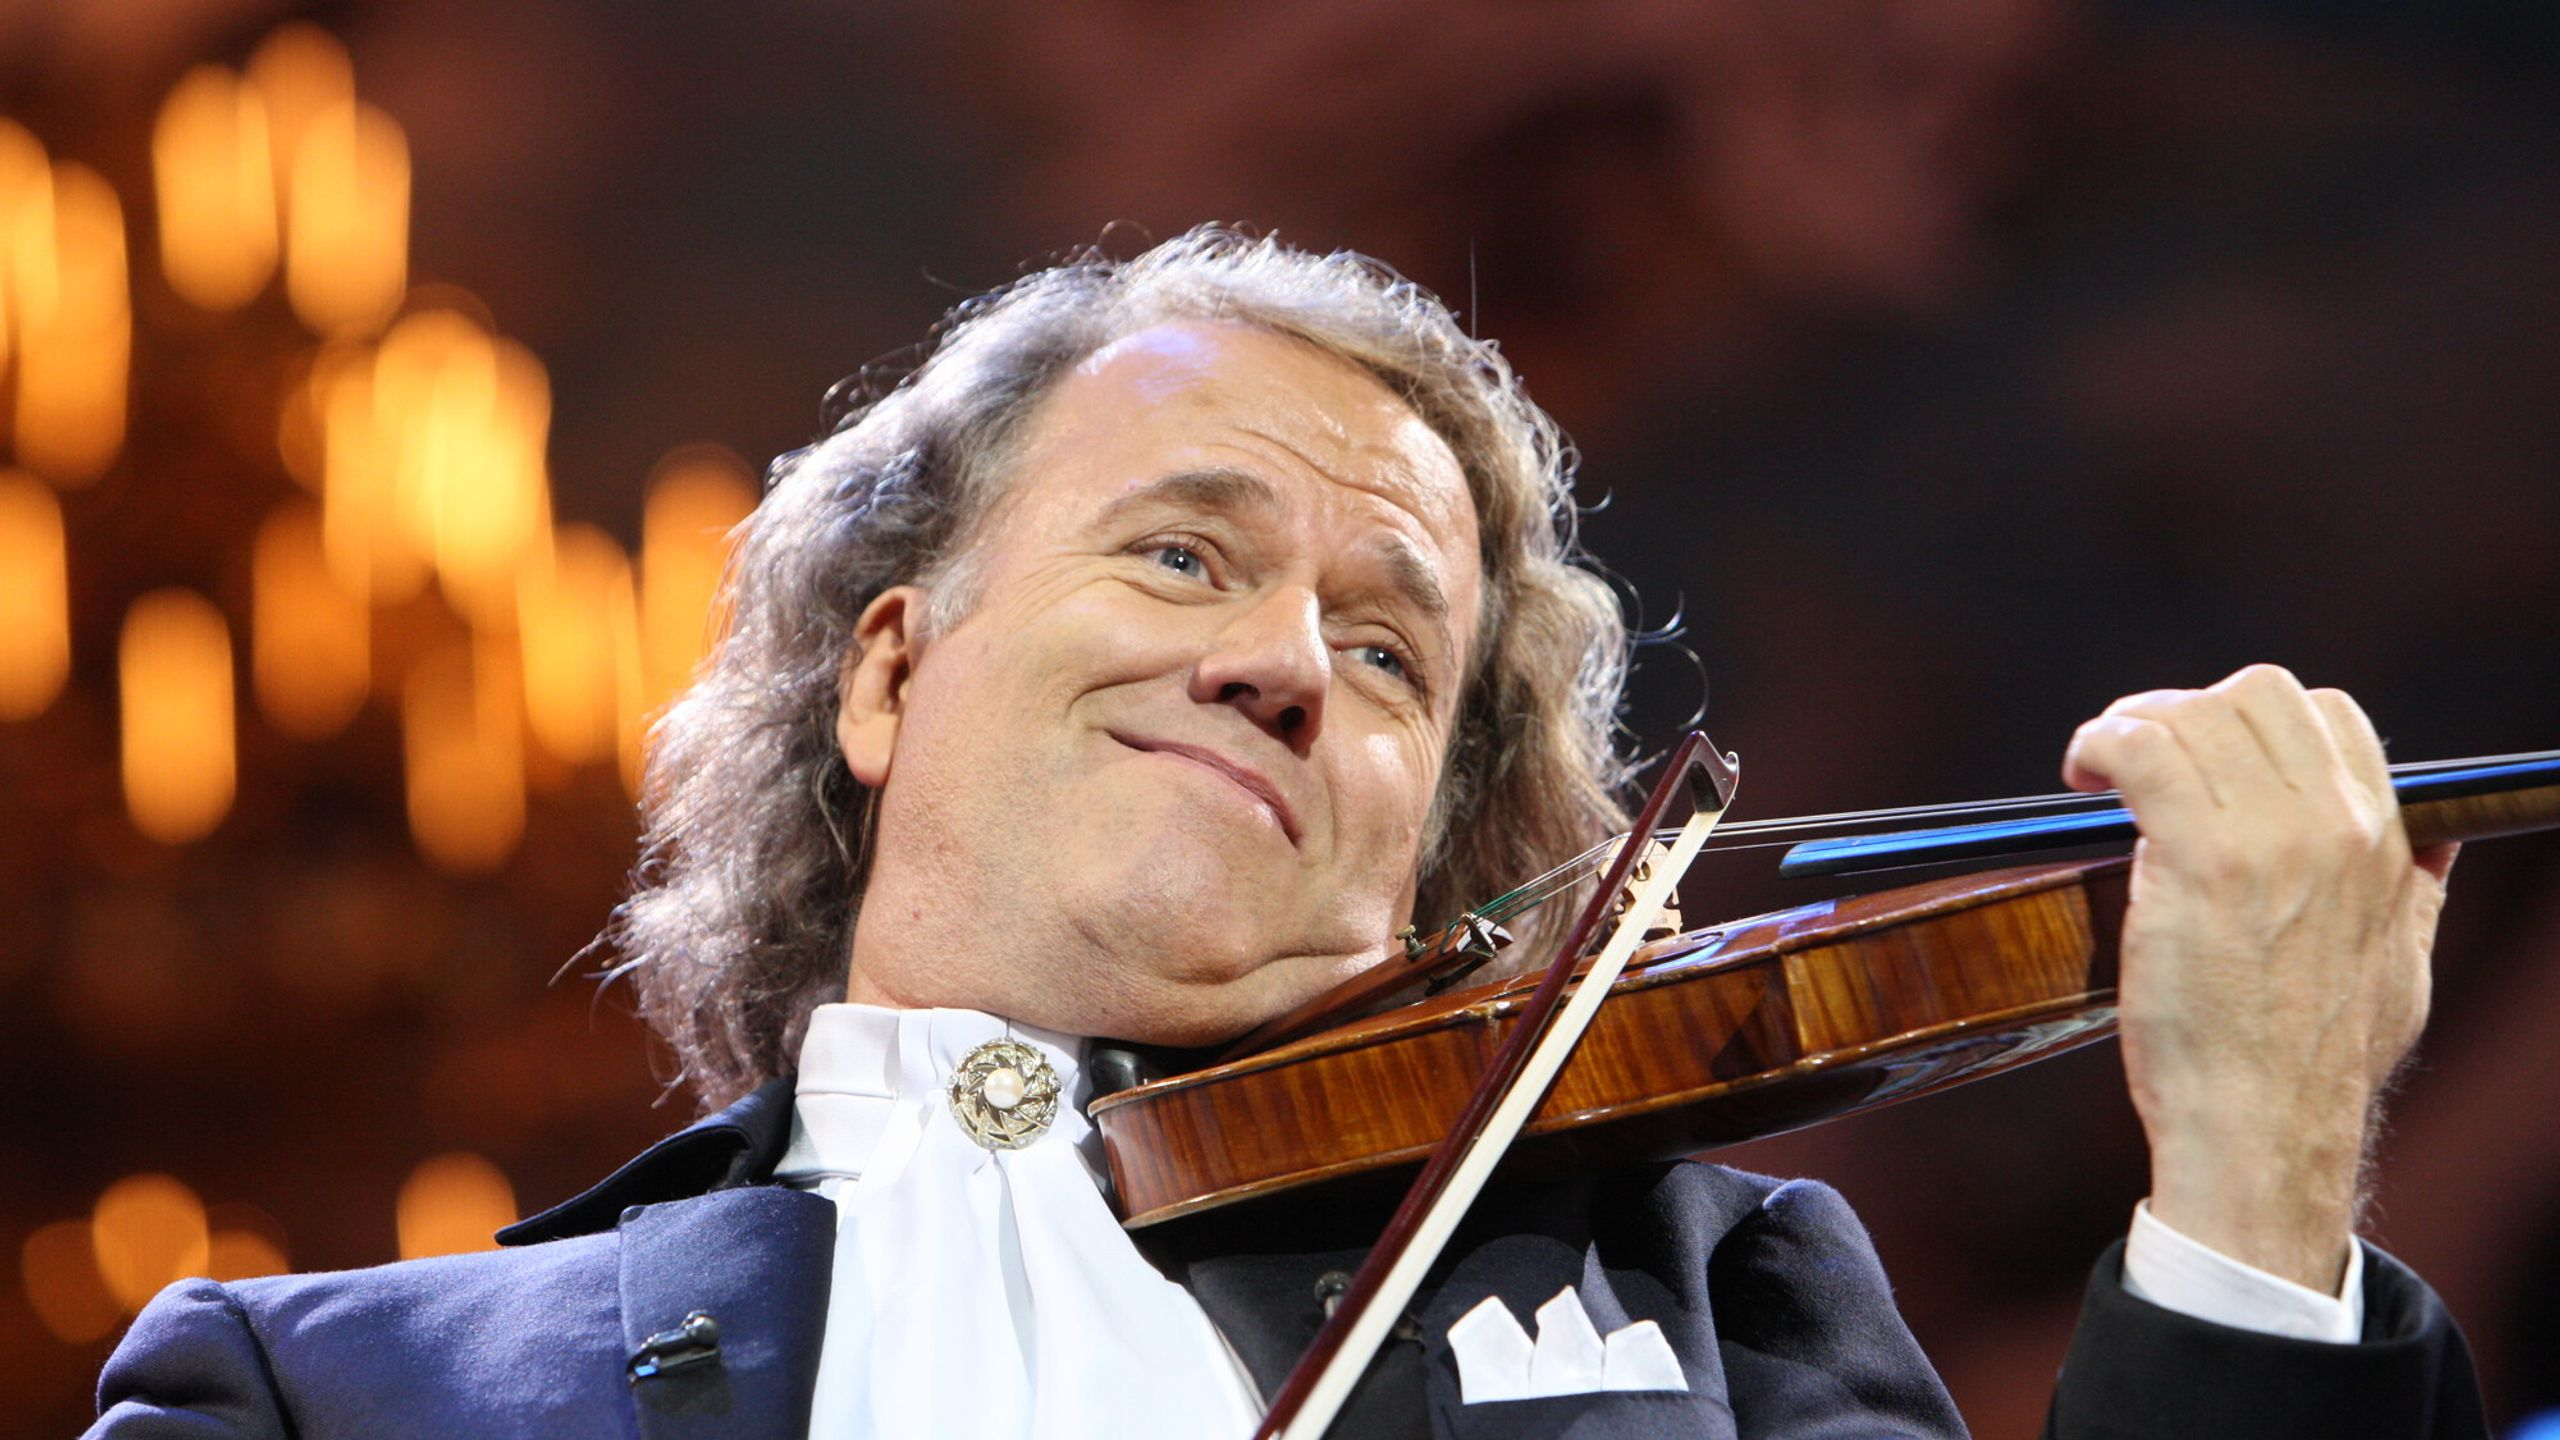 André Rieu in Melbourne